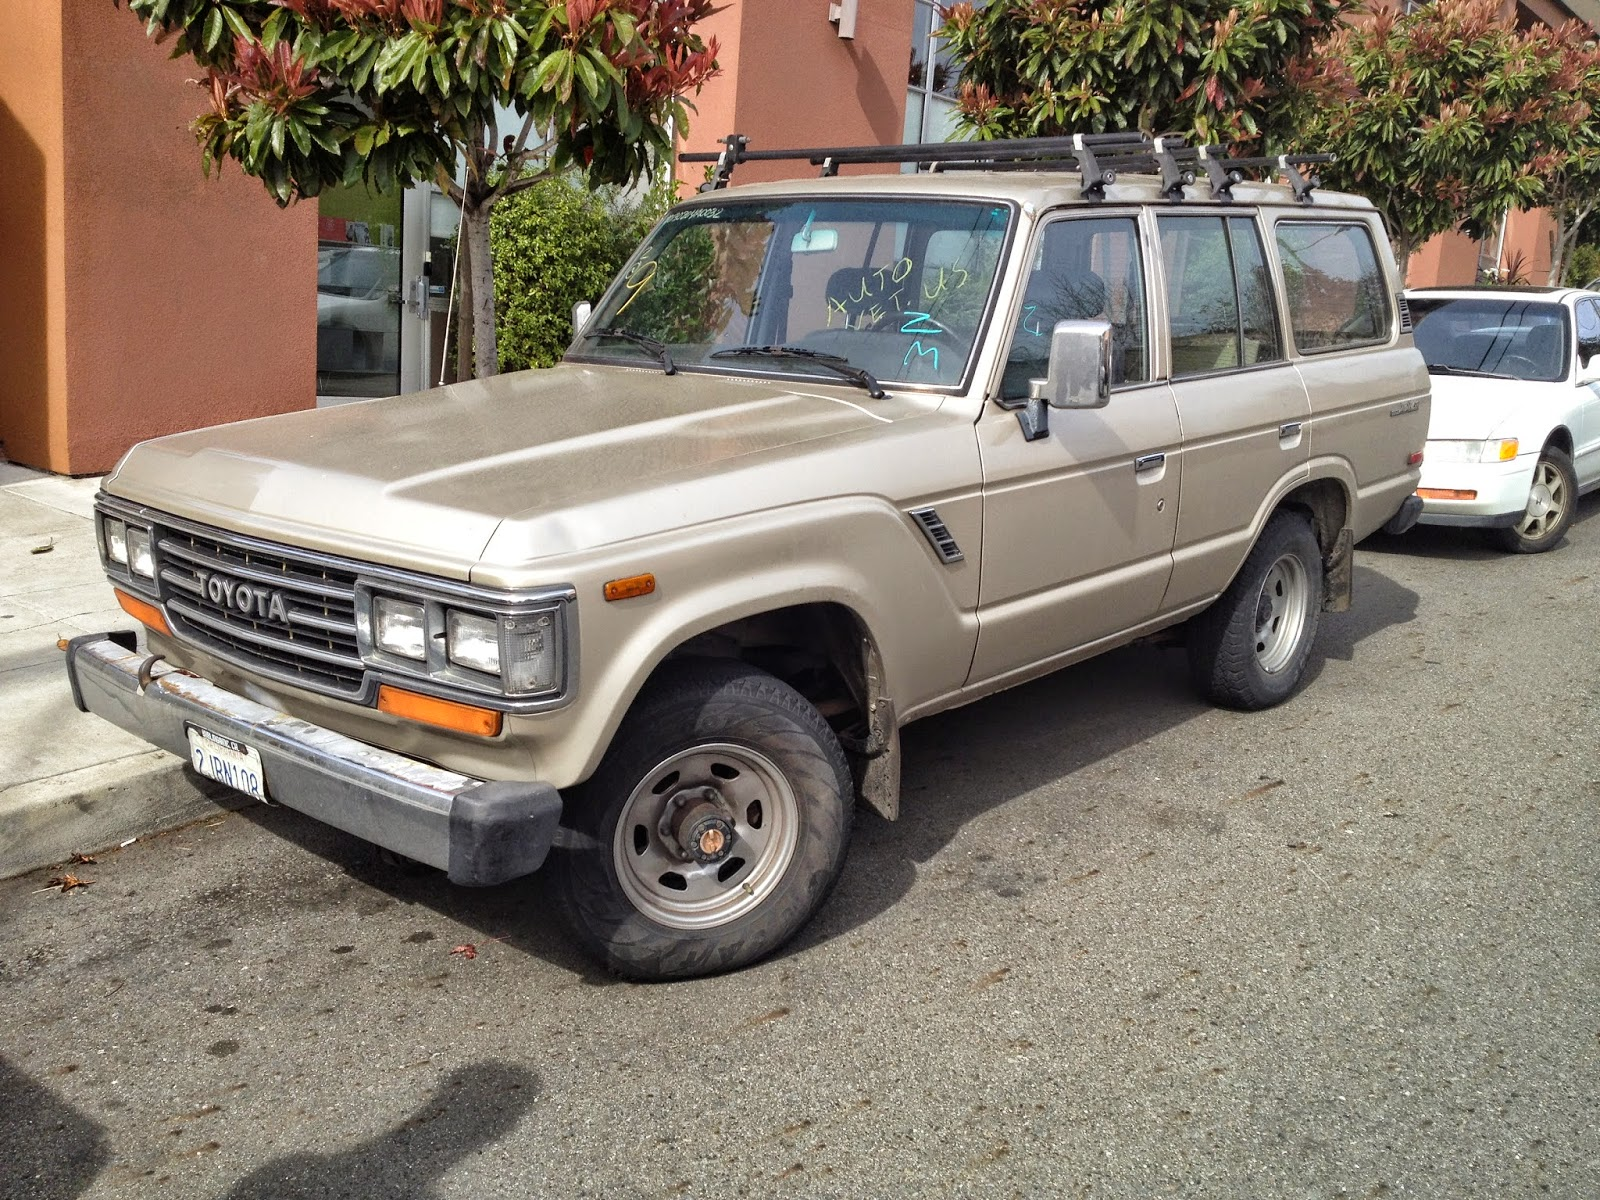 Stevescars.com #Police #Auction #Cars #For #Sale: 1988 toyota land ...